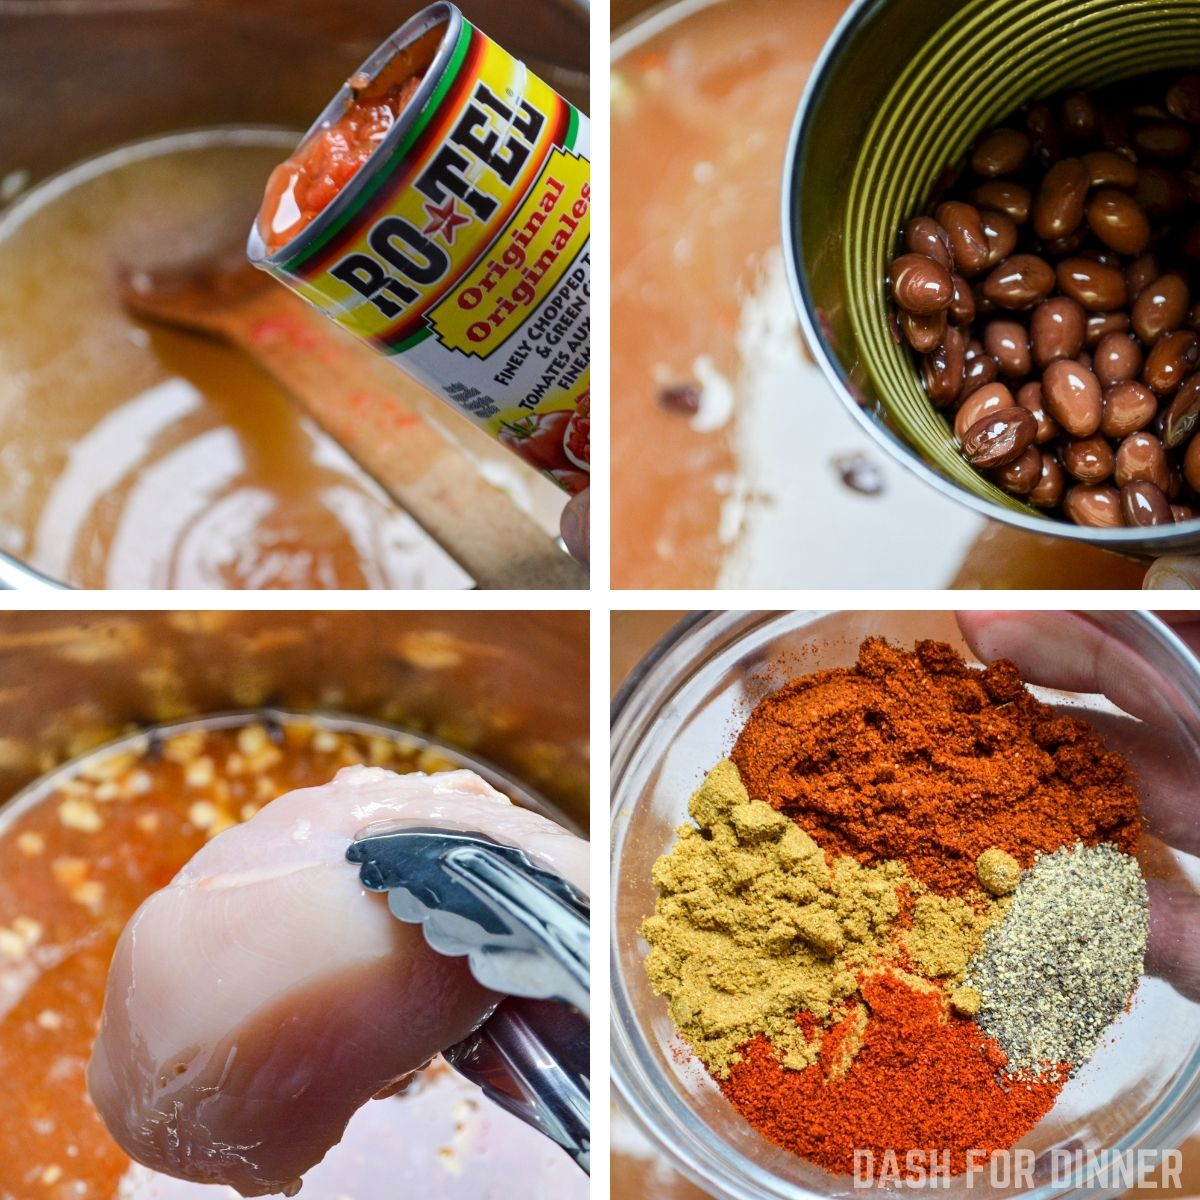 Adding various ingredients to an Instant Pot for soup, including a can of Rotel, black beans, chicken, and taco seasonings.